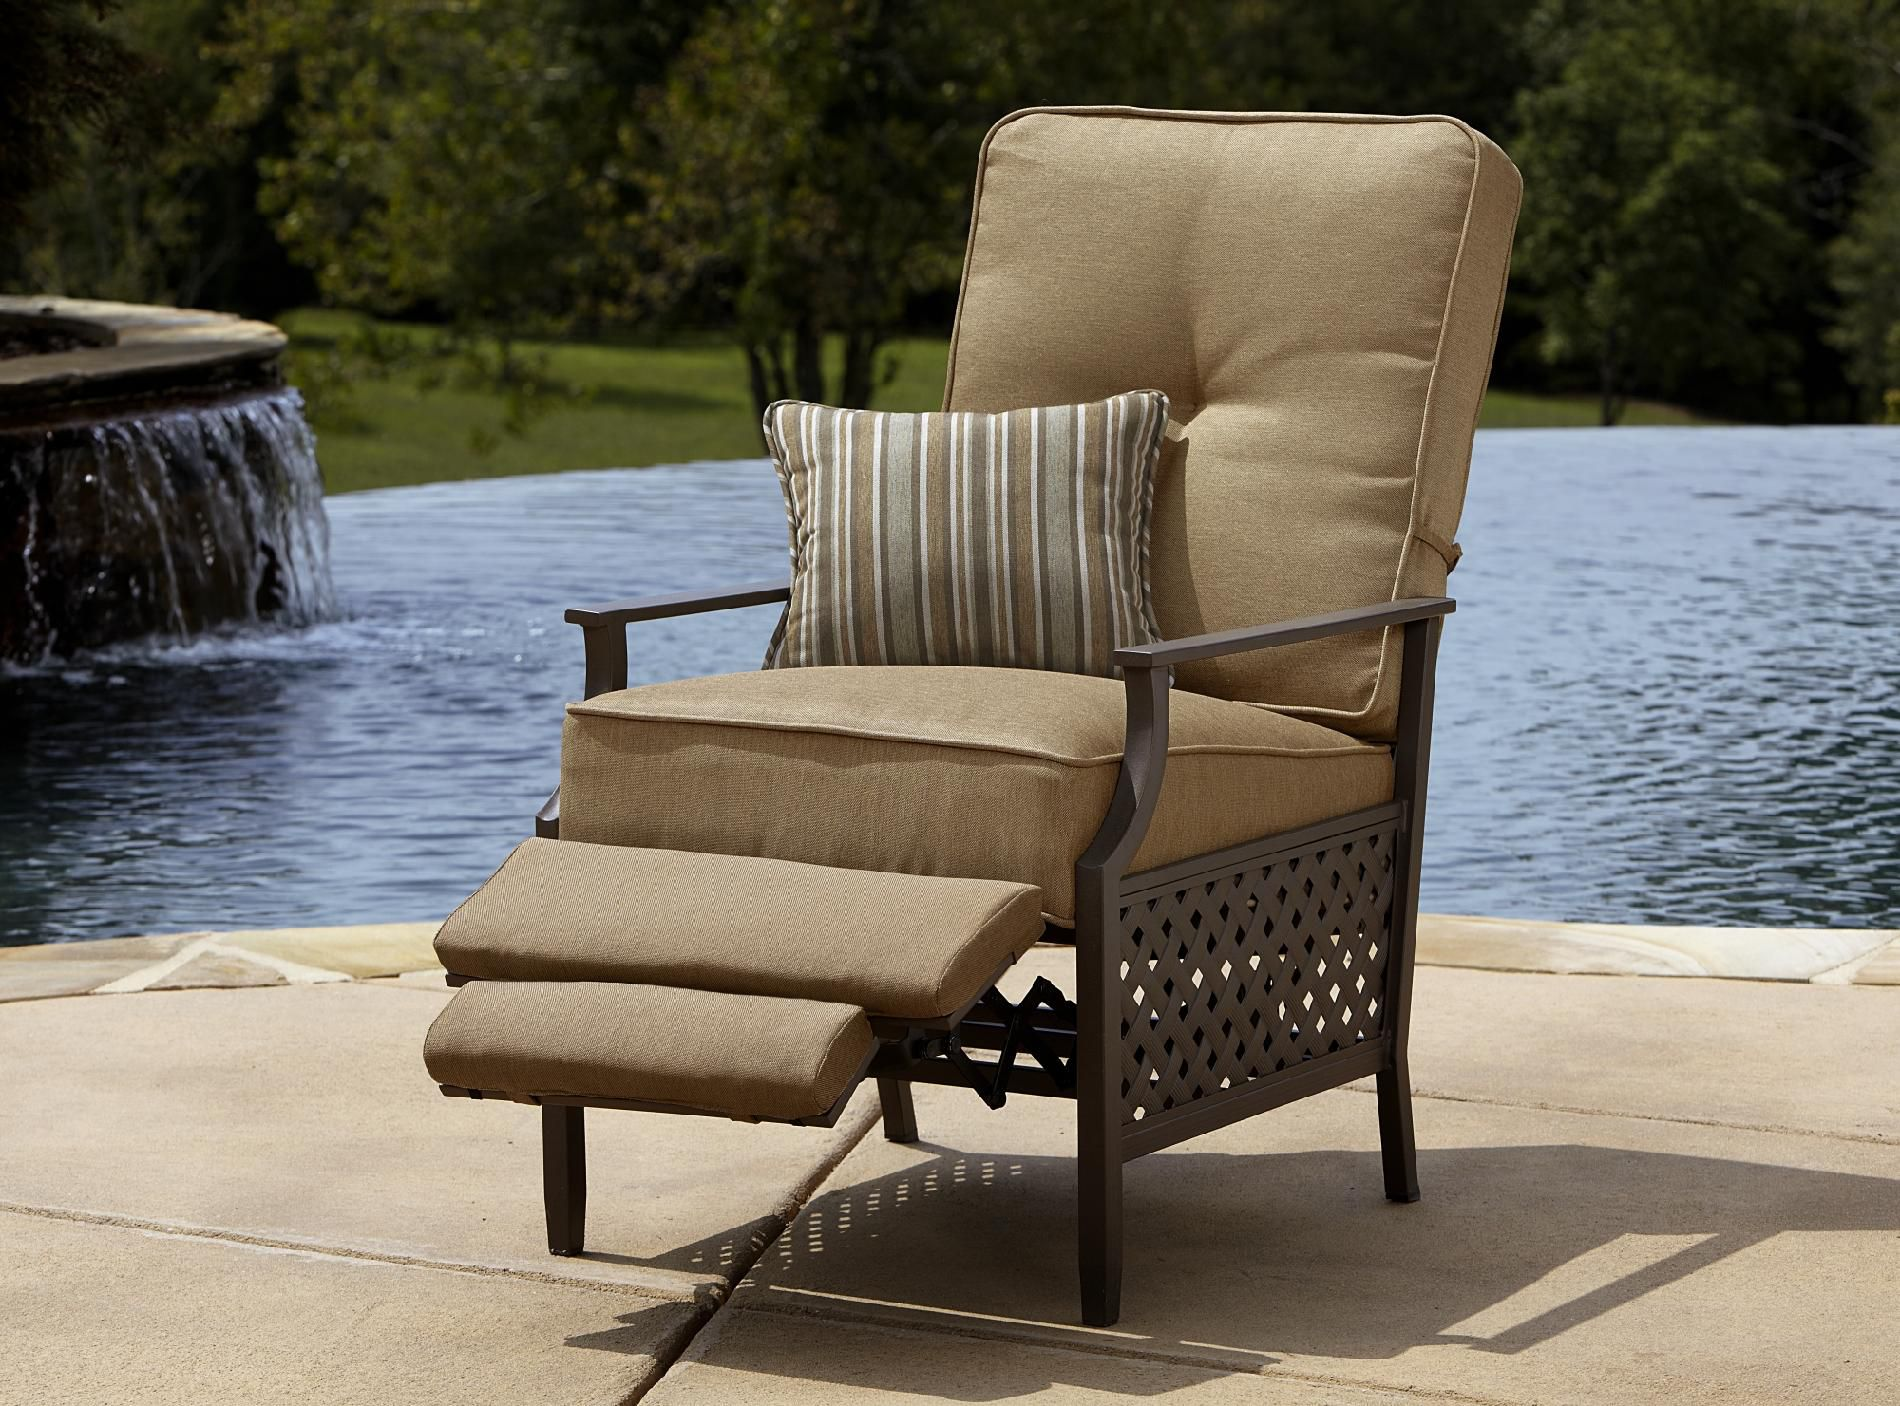 Outdoor Recliner Chair La Z Boy Outdoor Kennedy Recliner Outdoor Living Patio